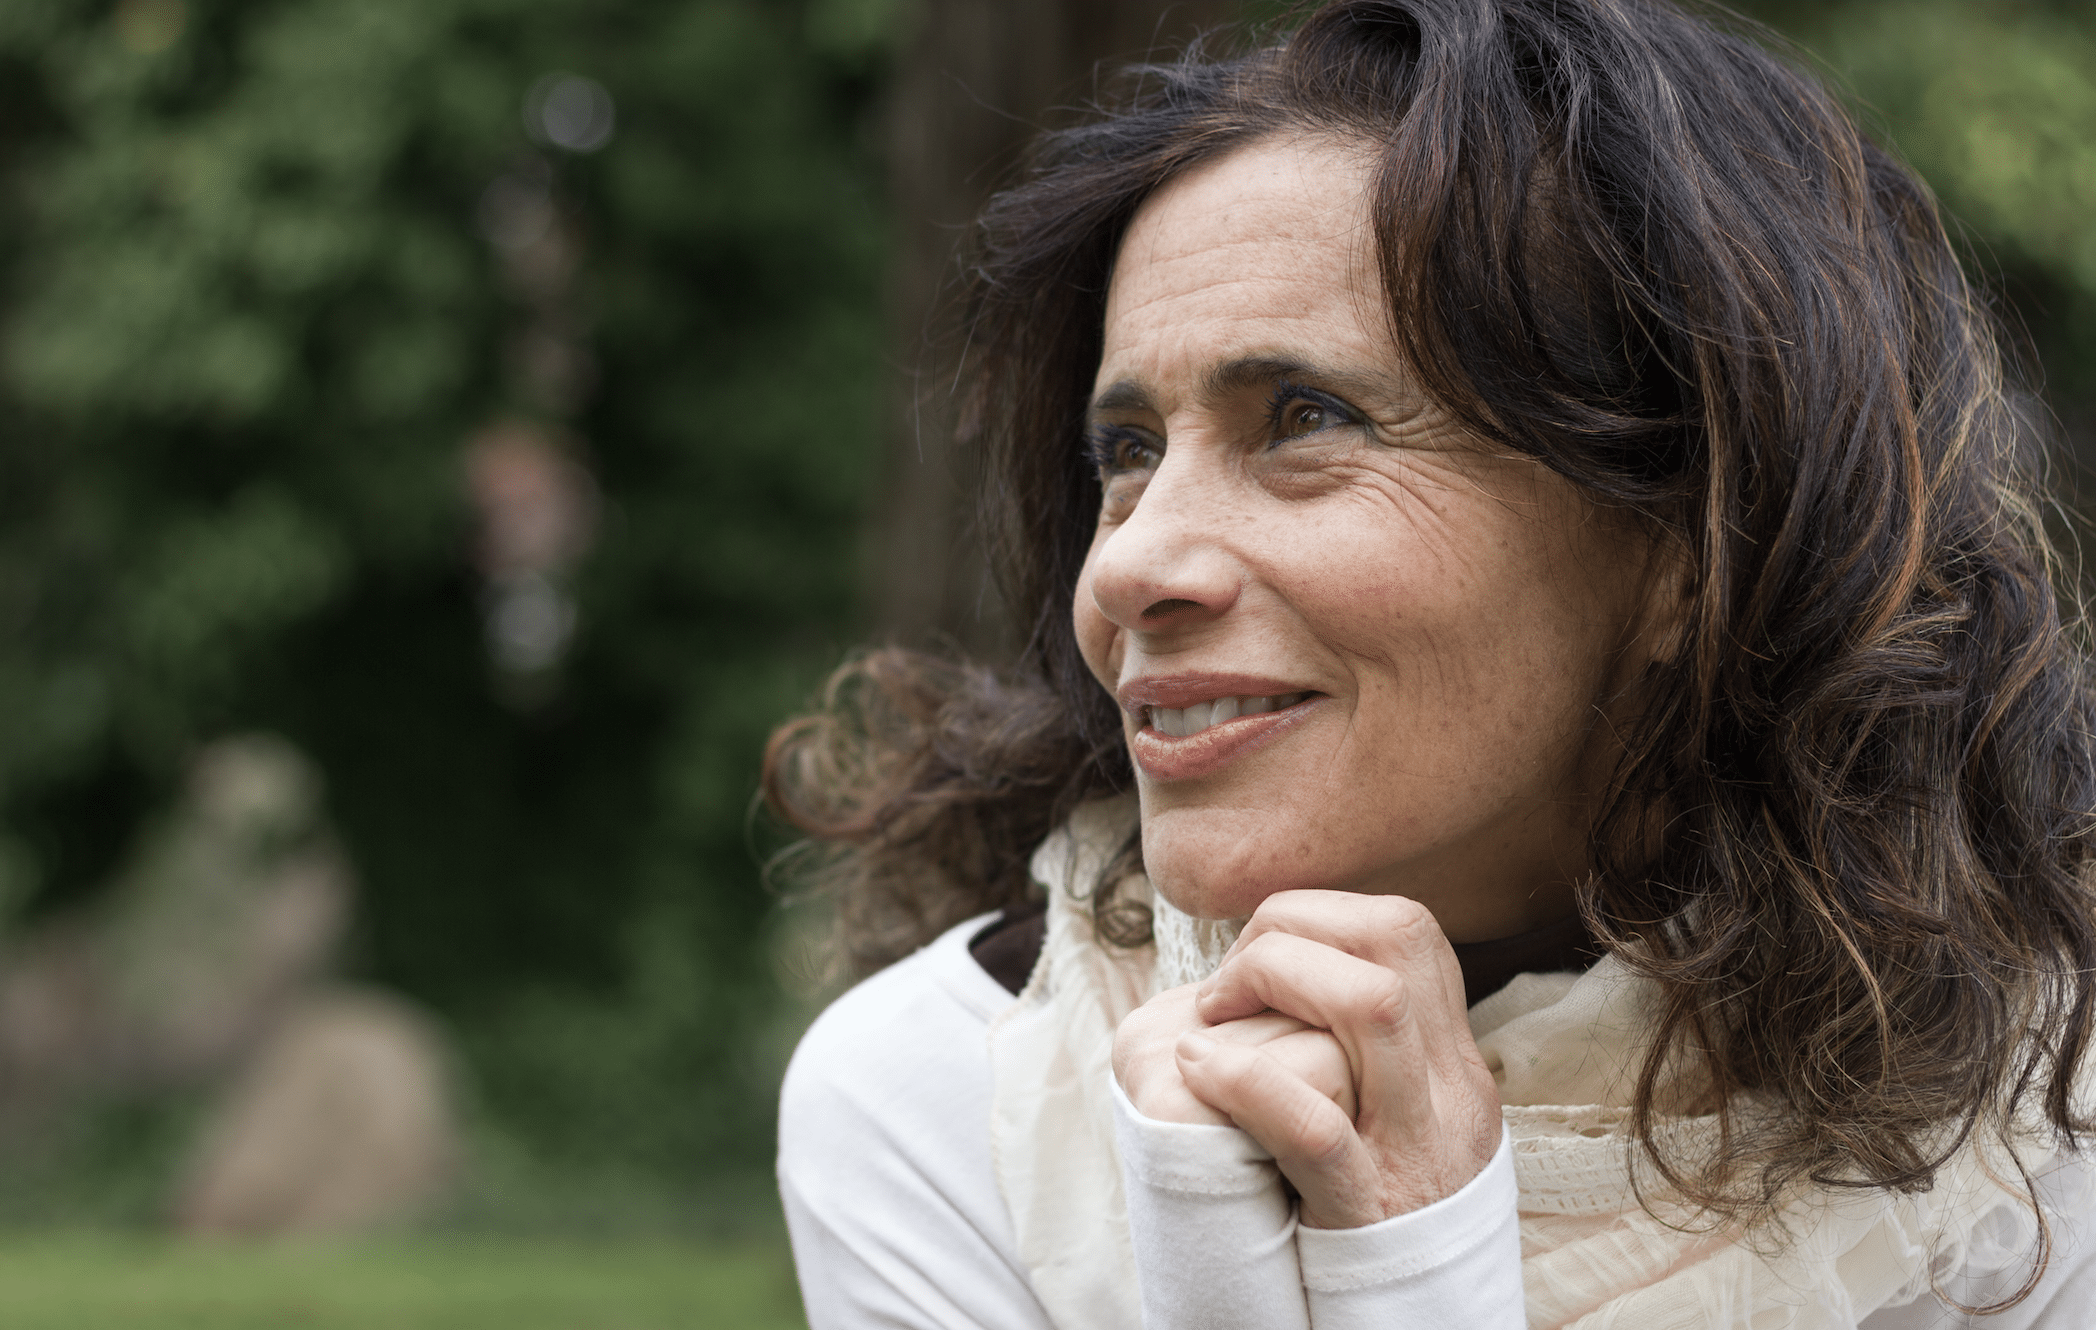 Middle aged lady smiling away from camera